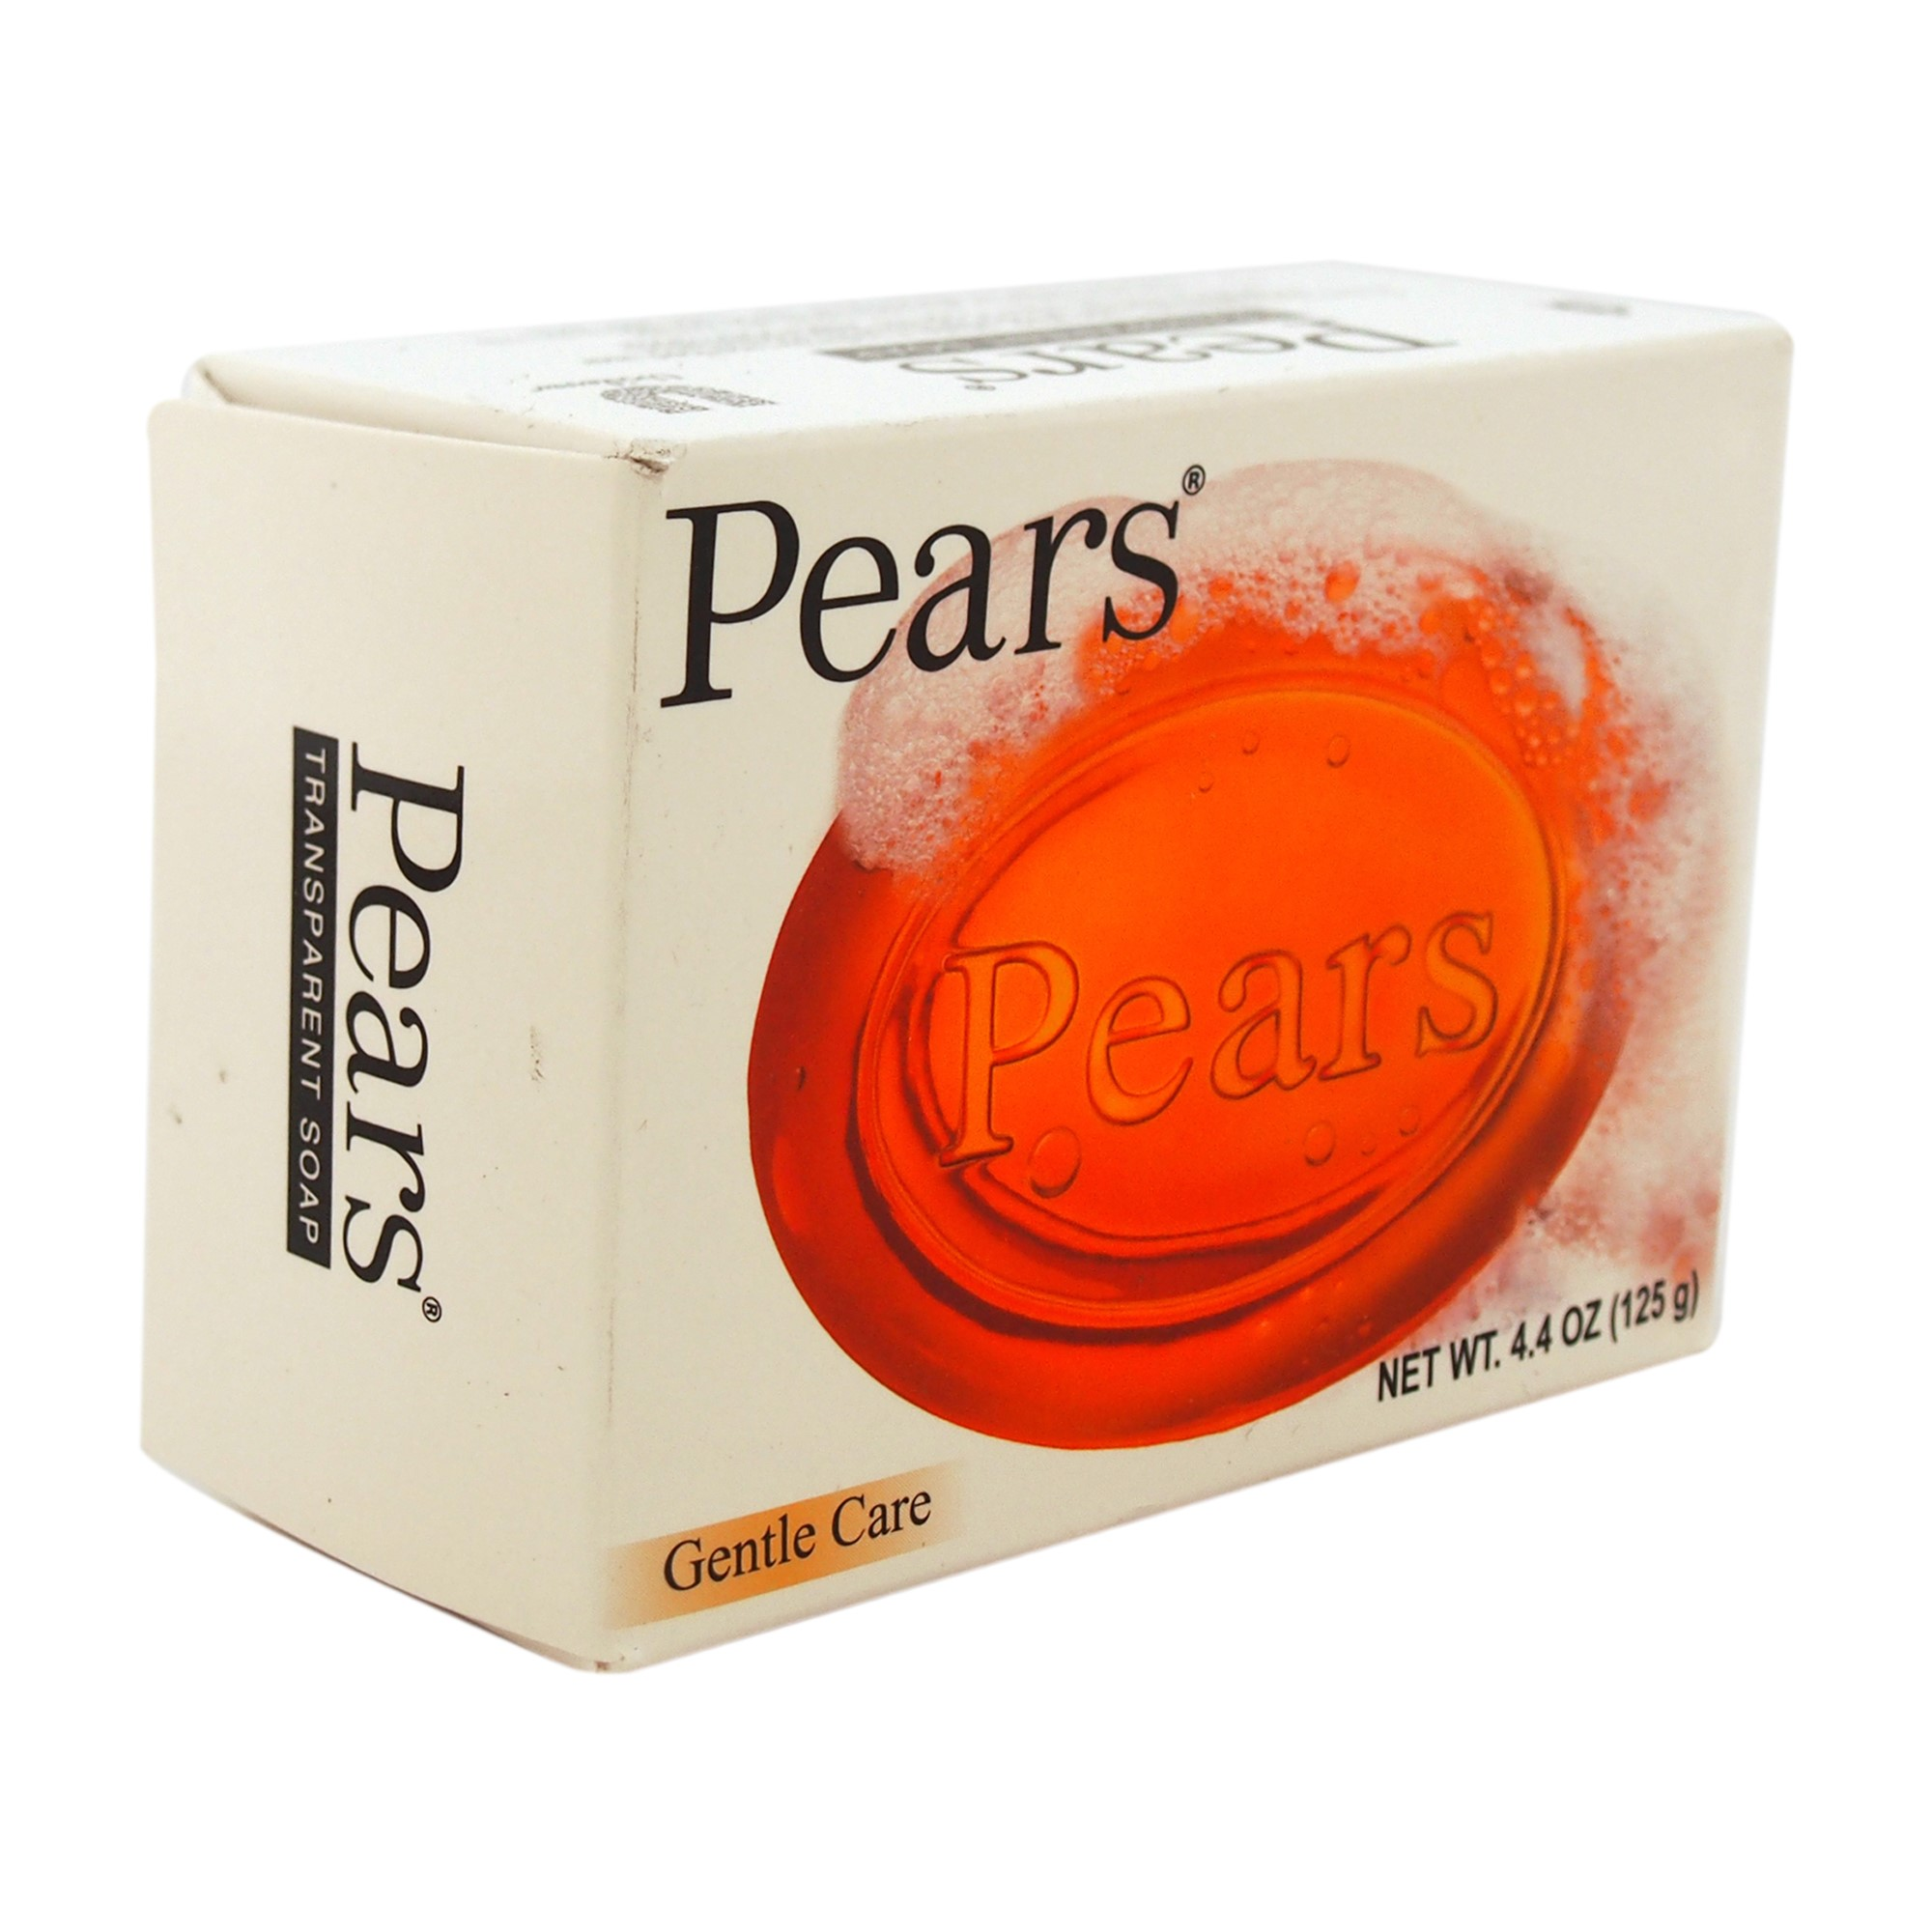 Pears Gentle Care Transparent Bar, 4.4 Oz